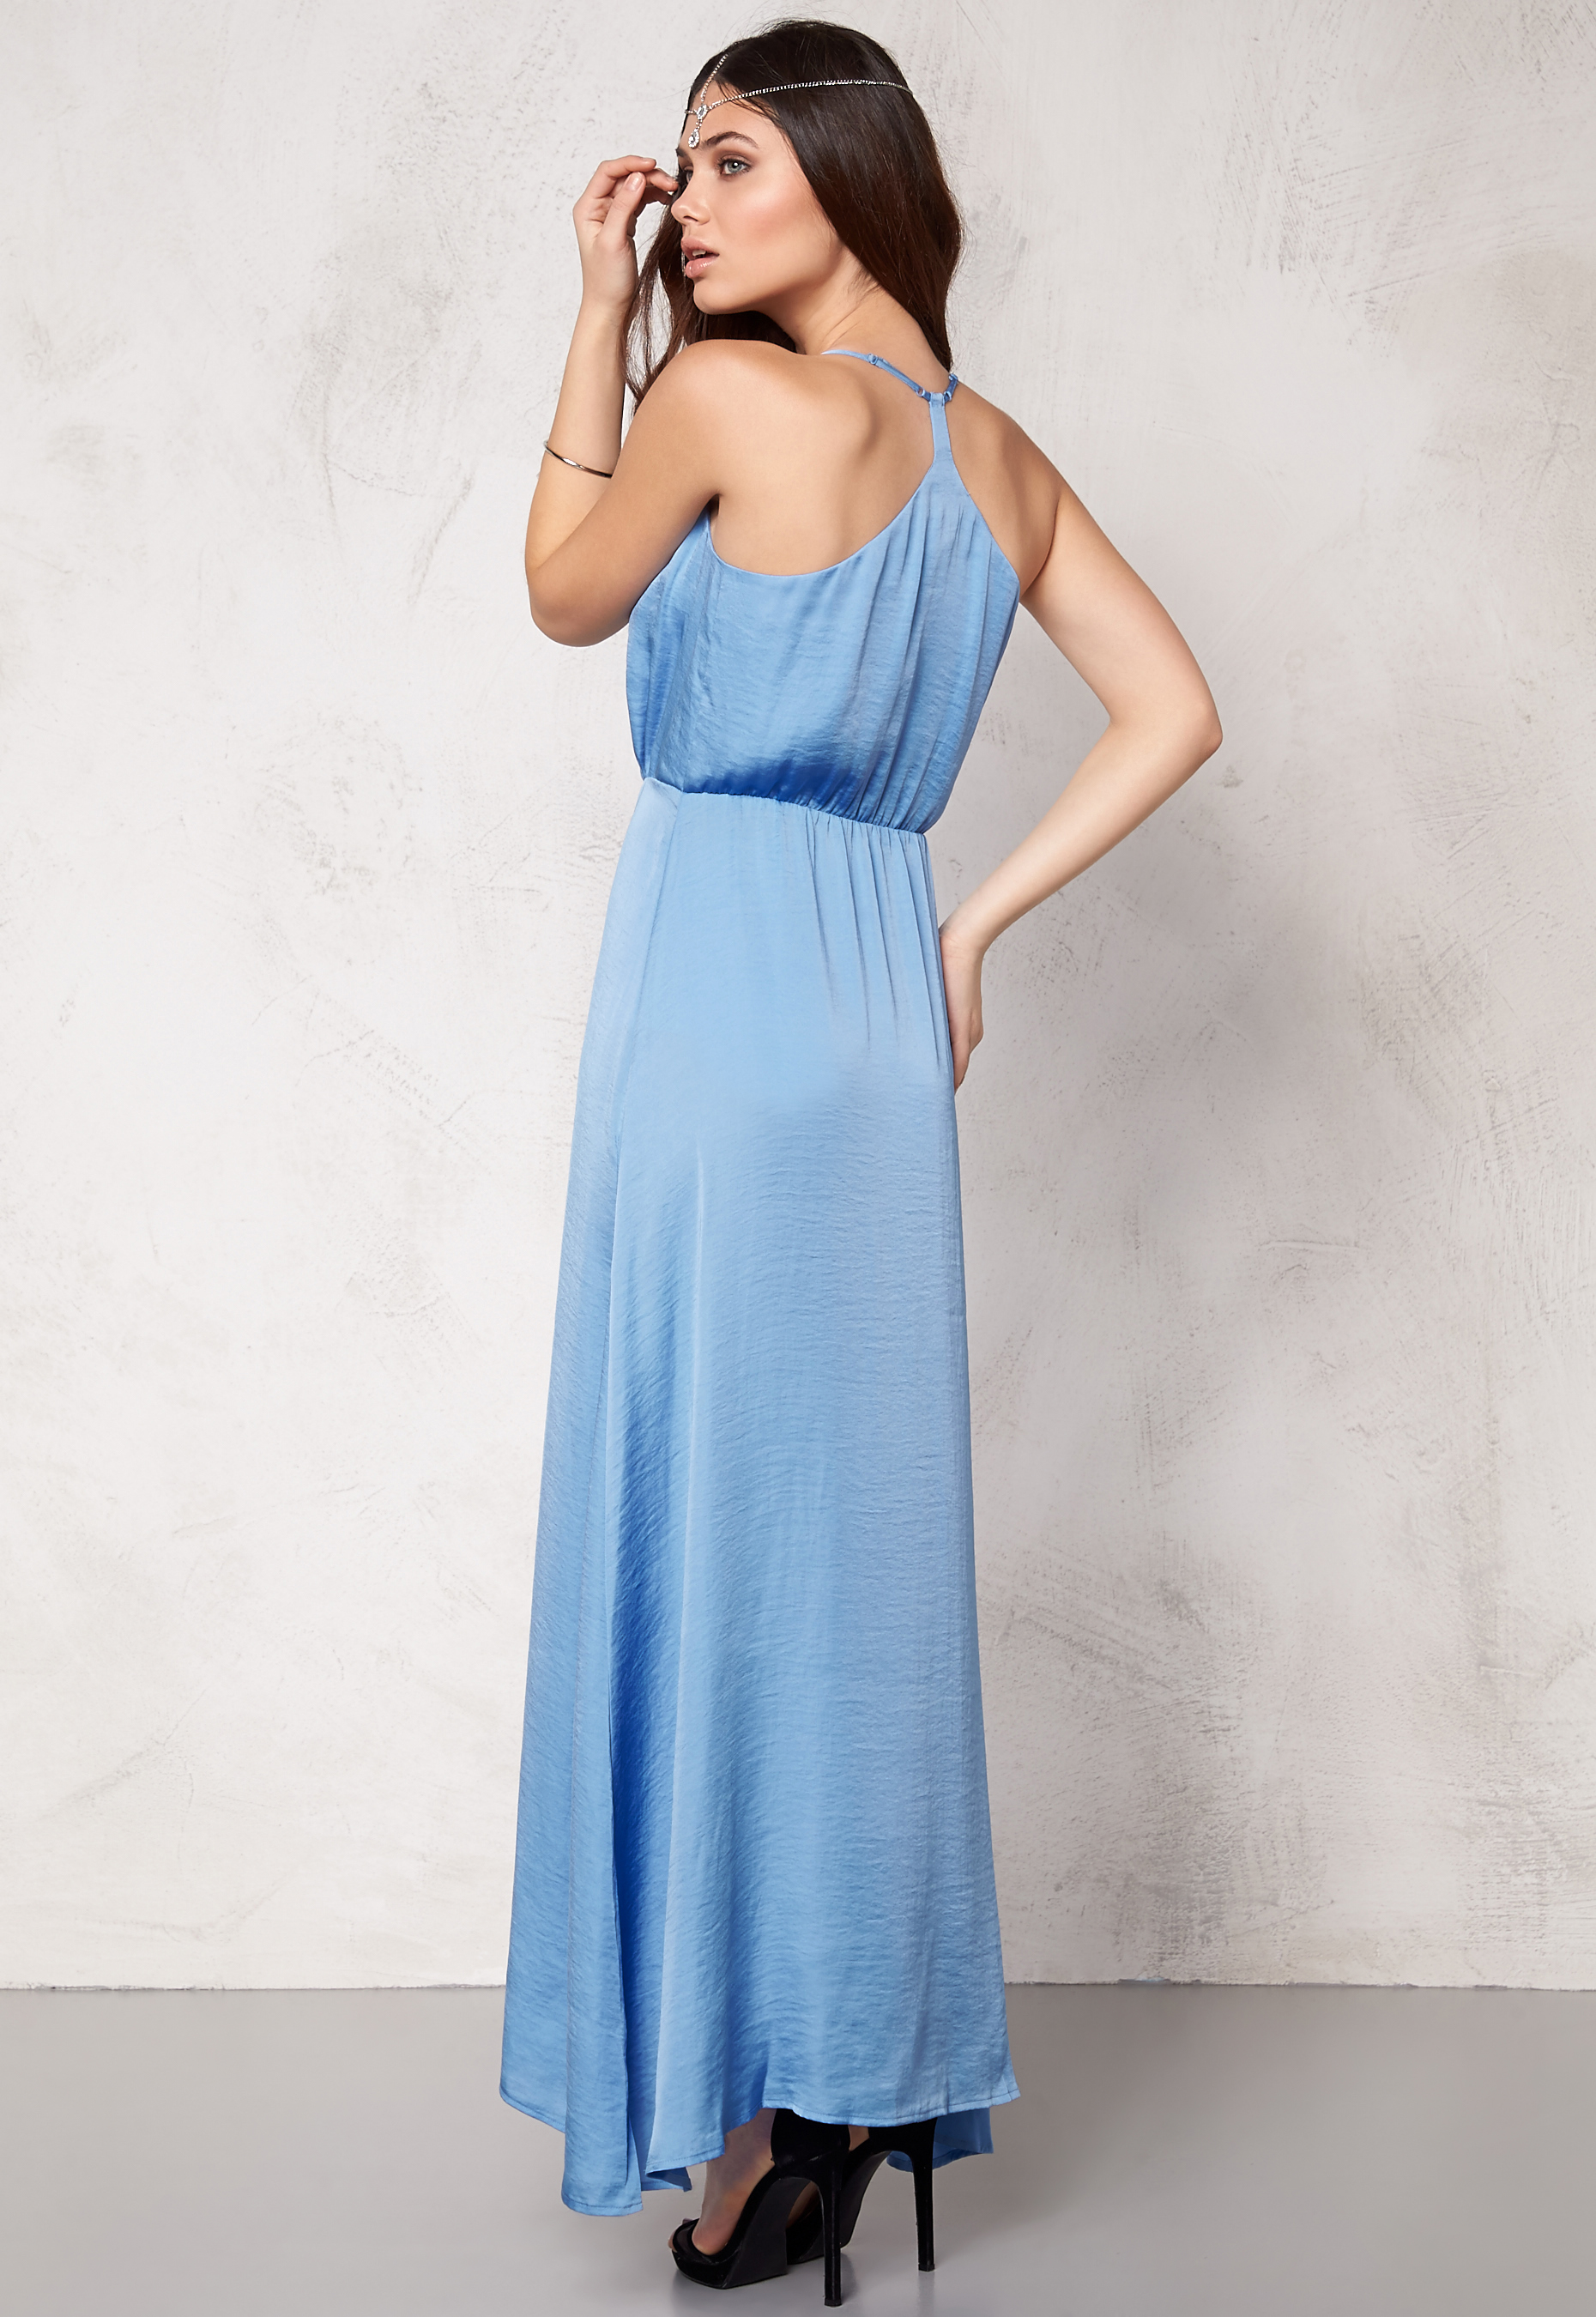 Luxury How To Make A Party Dress Picture Collection - All Wedding ...